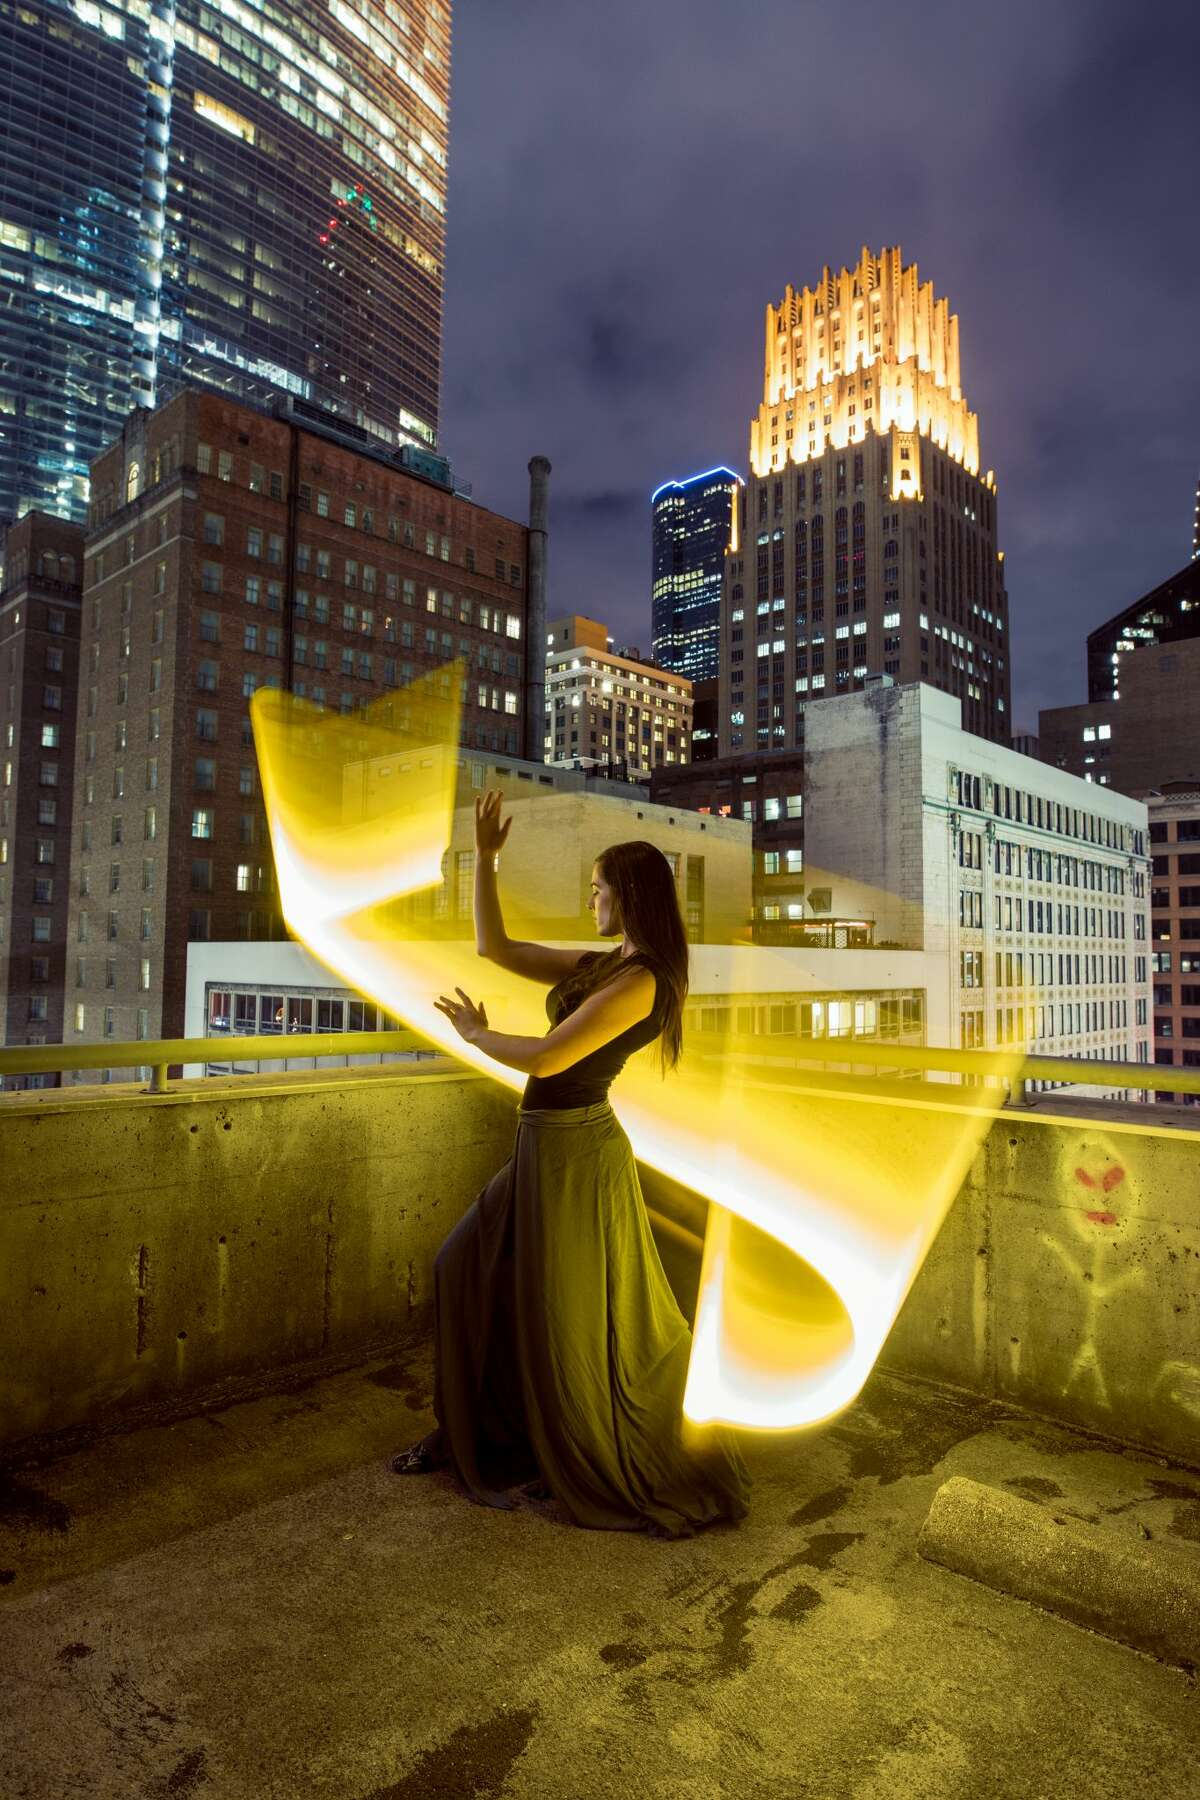 Houston photographer Zachery Smidt takes incredible photos around Texas by using light and an open exposure. The result is a stunning photo set in all things Texas Site:Downtown Houston